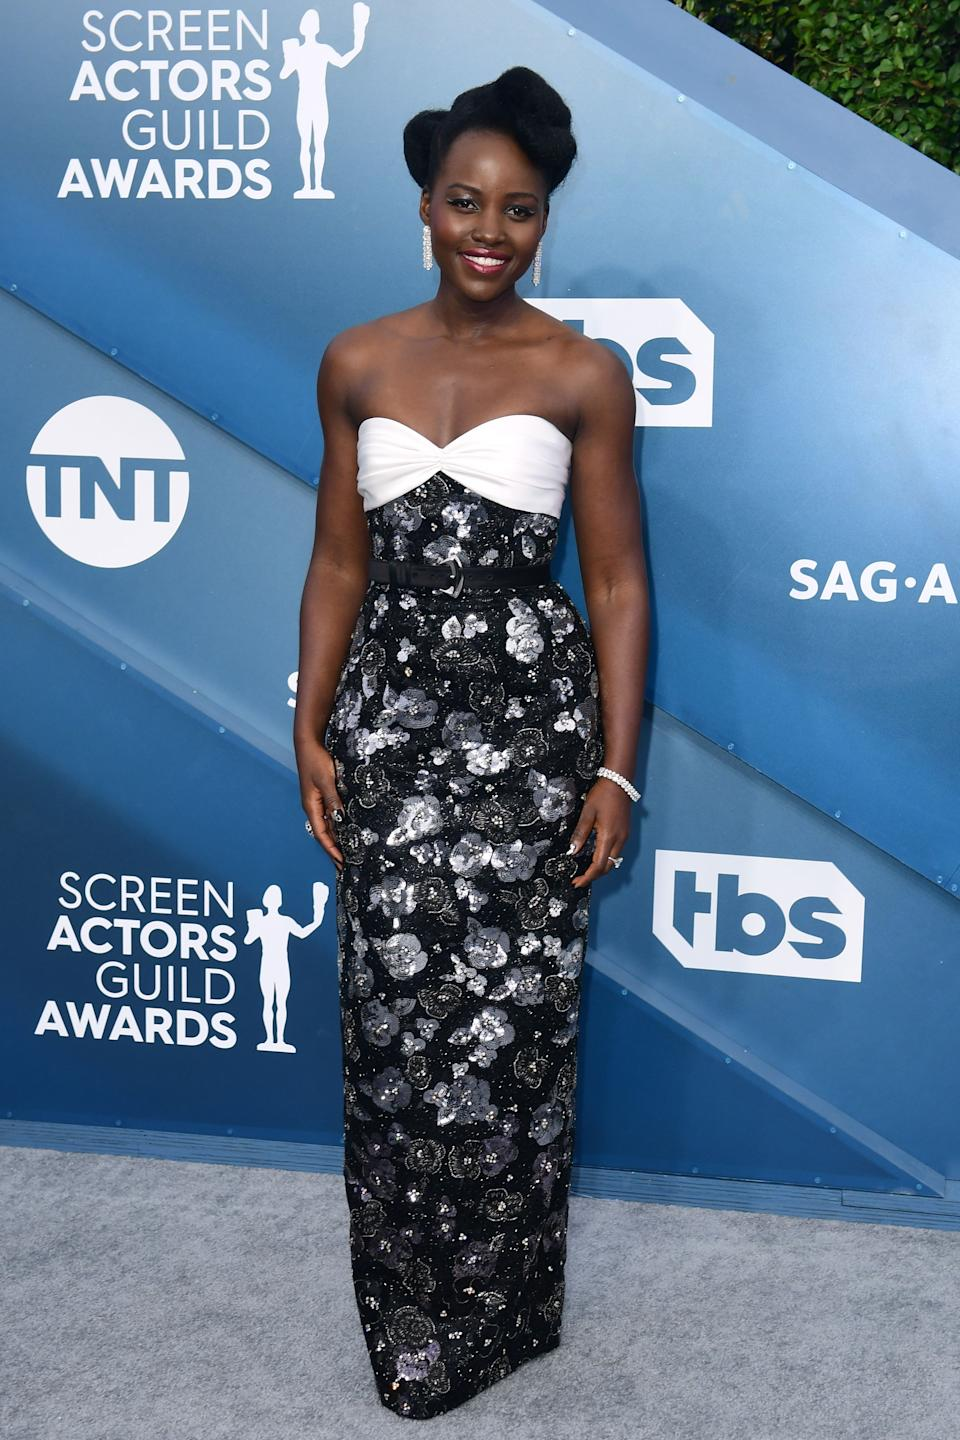 """<h2>Lupita Nyong'o in Louis Vuitton</h2><br>Honestly, <em>Us</em> star Lupita Nyong'o could show up on the red carpet wearing sweatpants and we'd praise her. Then again, we wouldn't trade this belted, floral frock for anything. <br><br><span class=""""copyright"""">Photo by FREDERIC J. BROWN/AFP via Getty Images.</span>"""